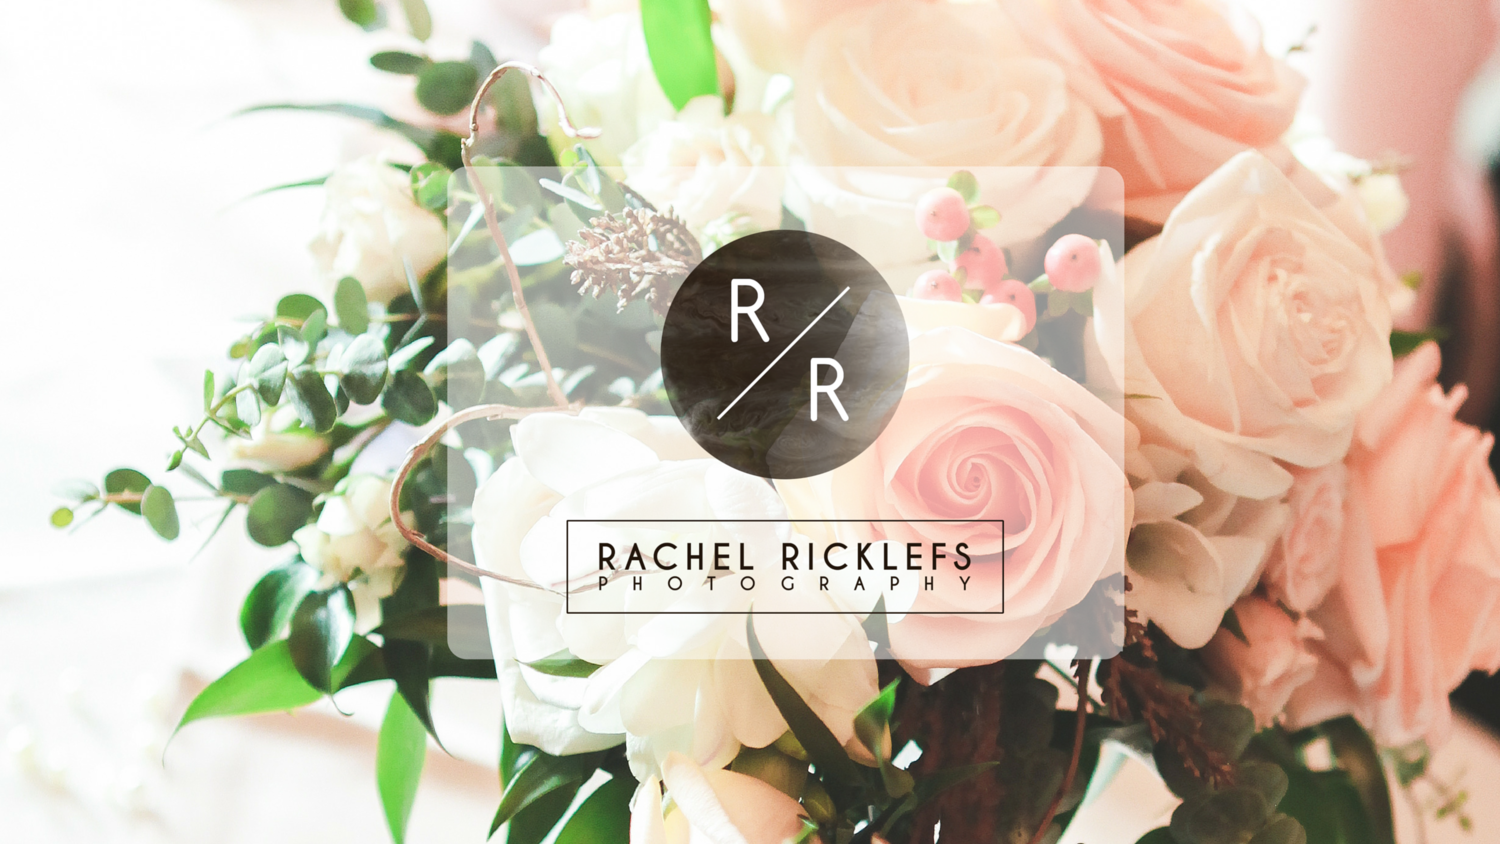 Rachel Ricklefs Photography